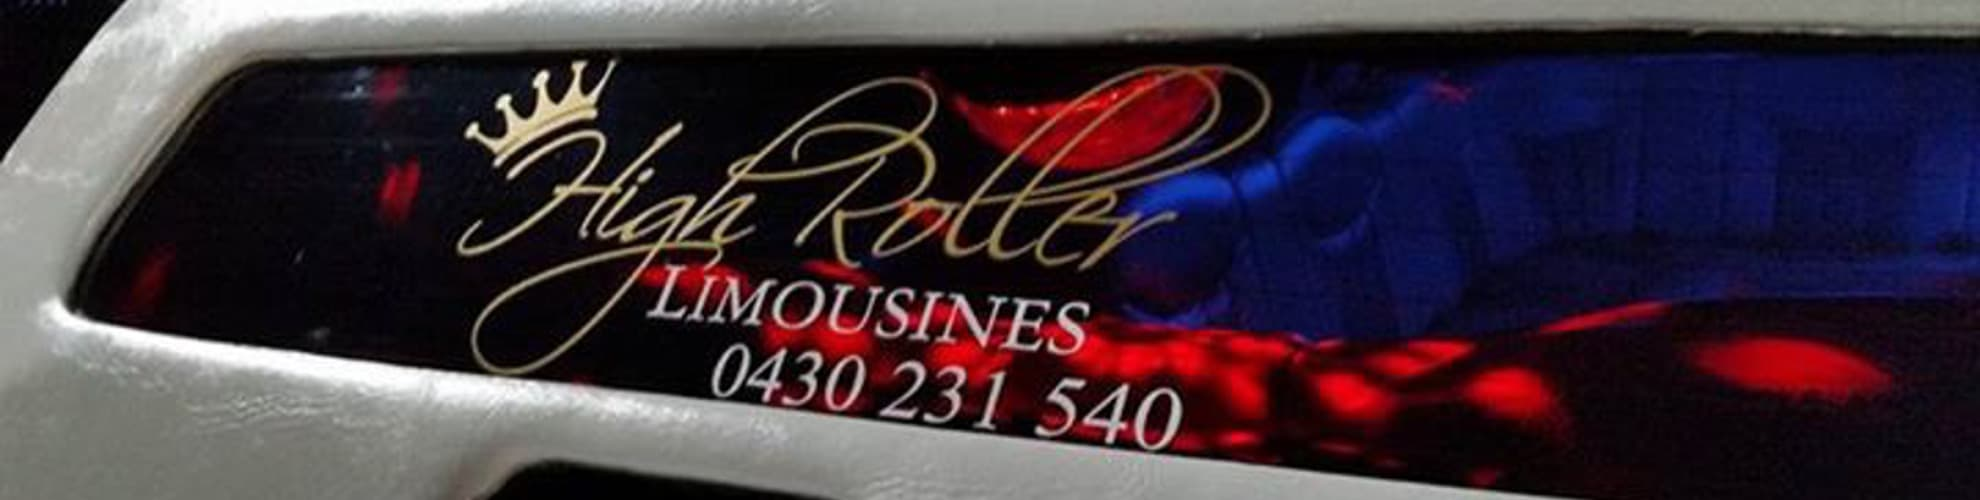 HighRoller Limousines Melbourne